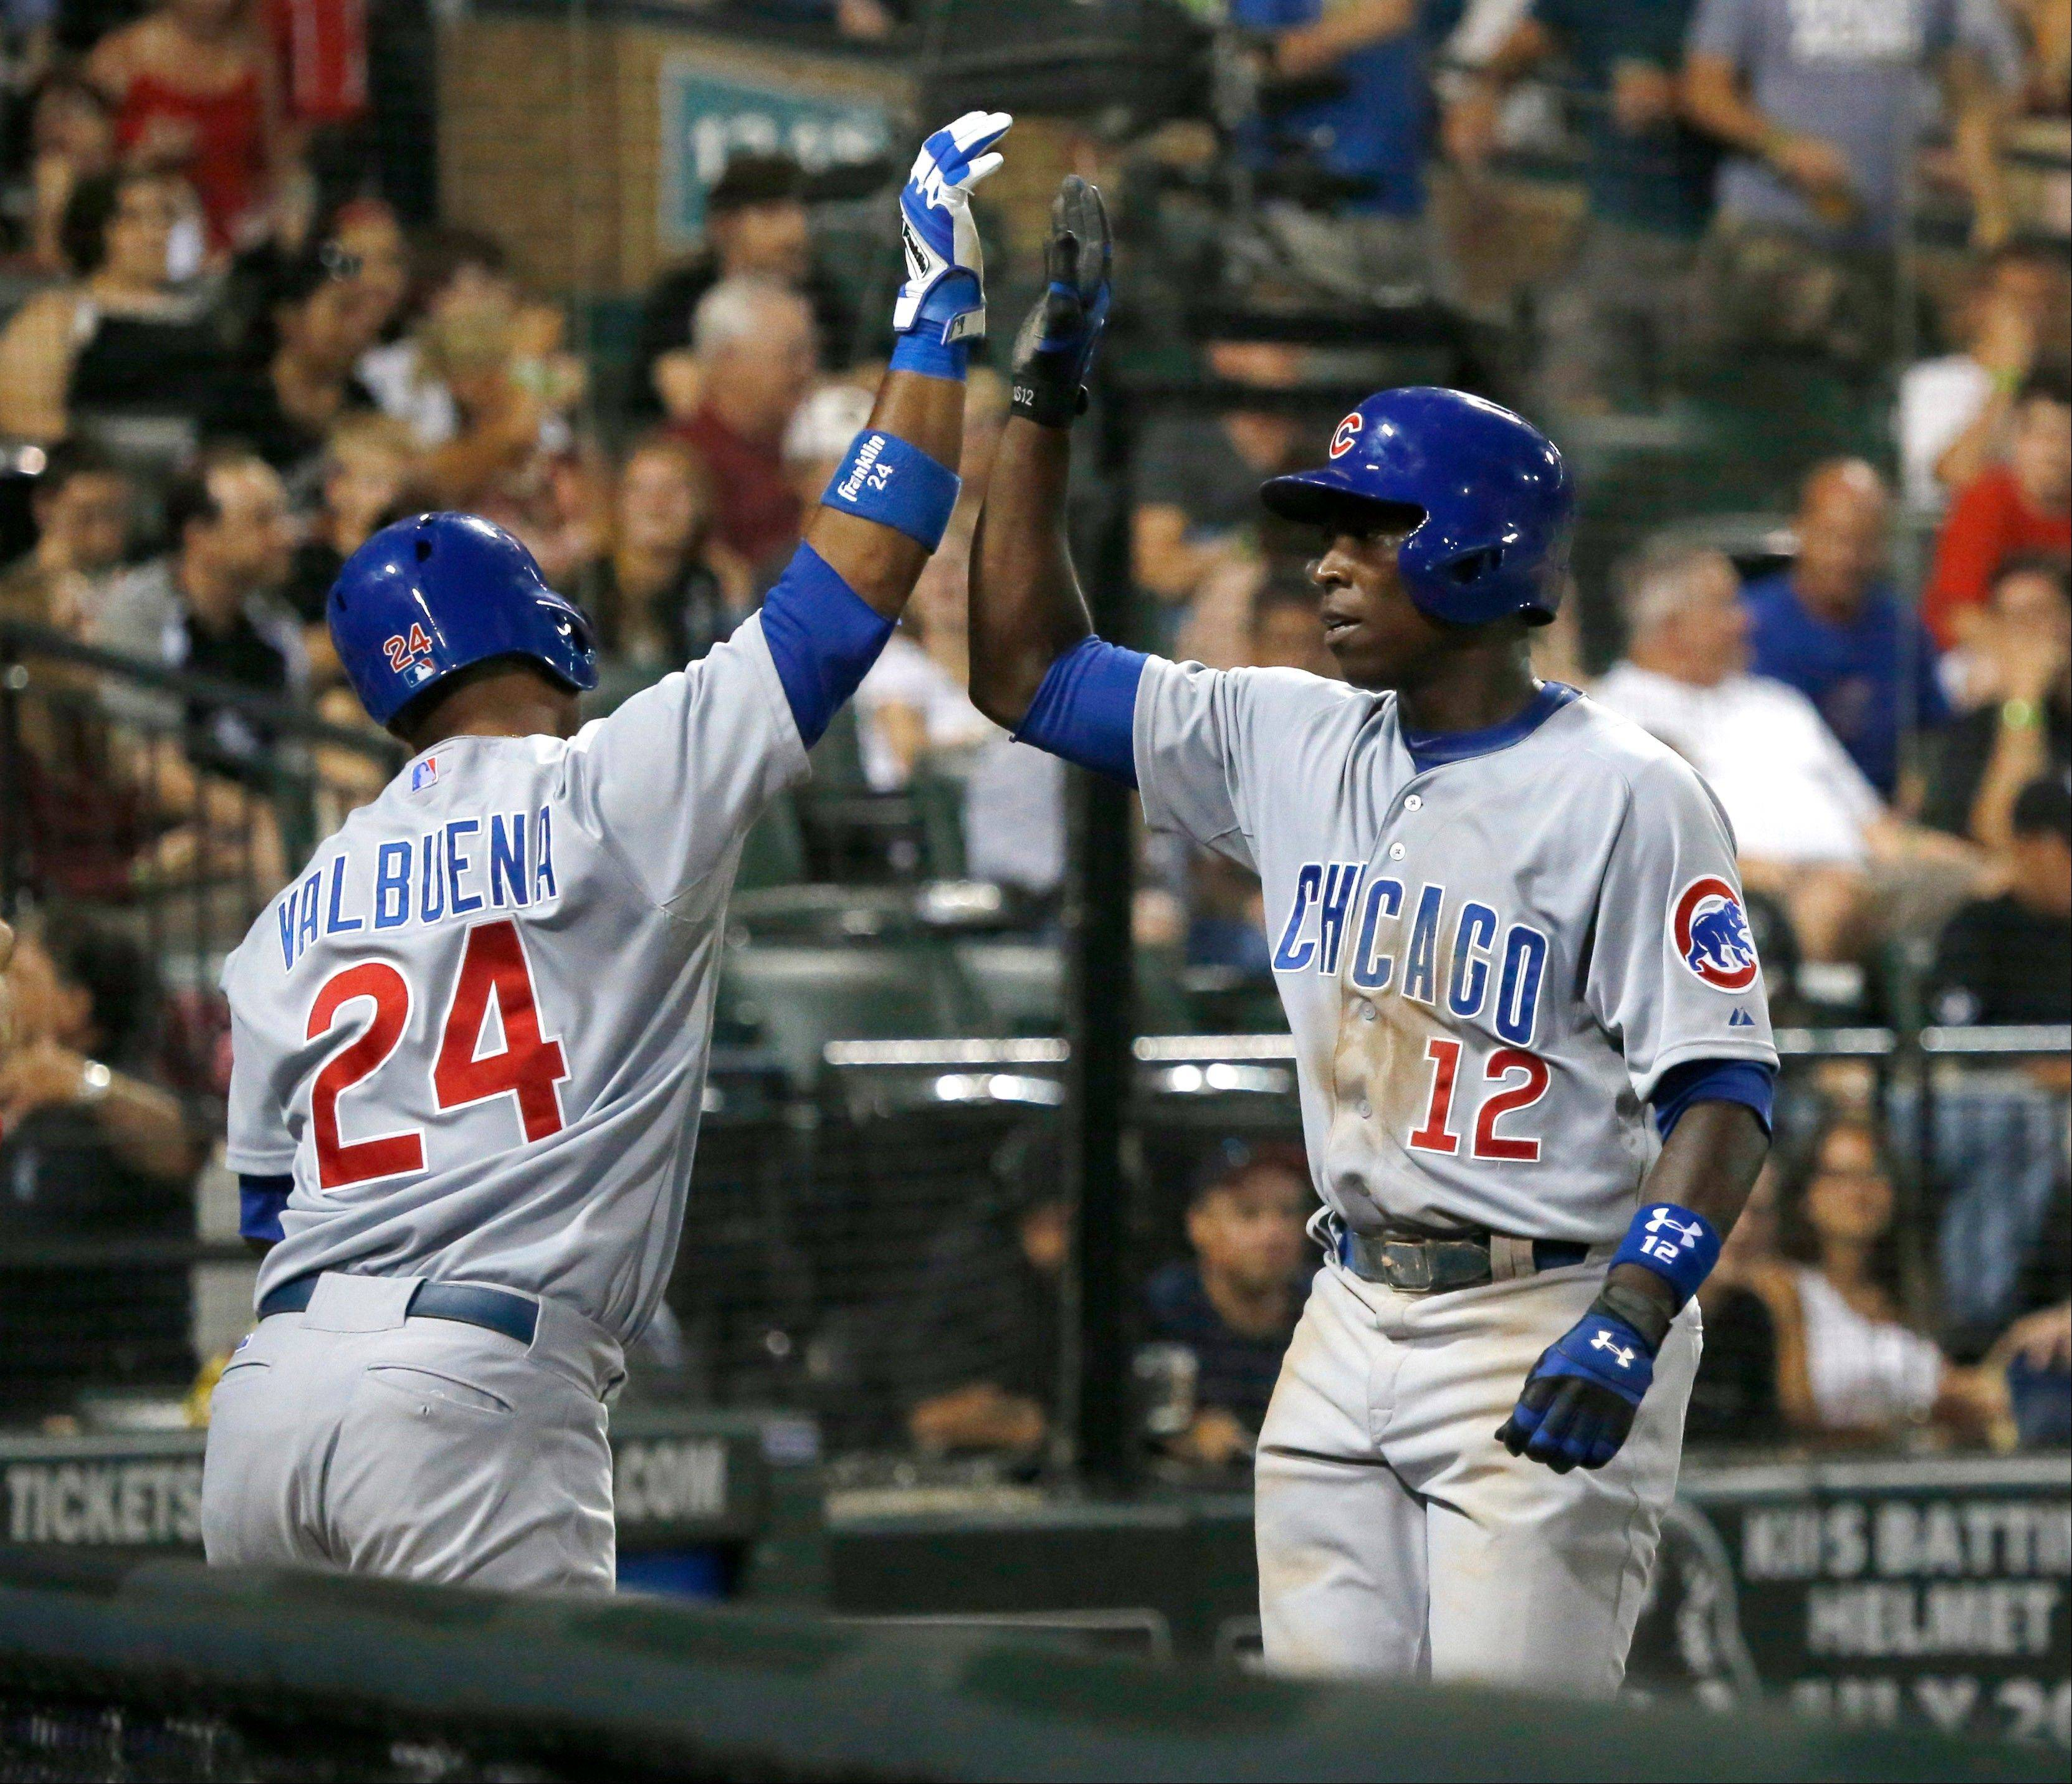 Luis Valbuena greets his Cubs teammate Alfonso Soriano after Soriano's homer off White Sox starter Hector Santiago in Monday's sixth inning at U.S. Cellular Field.